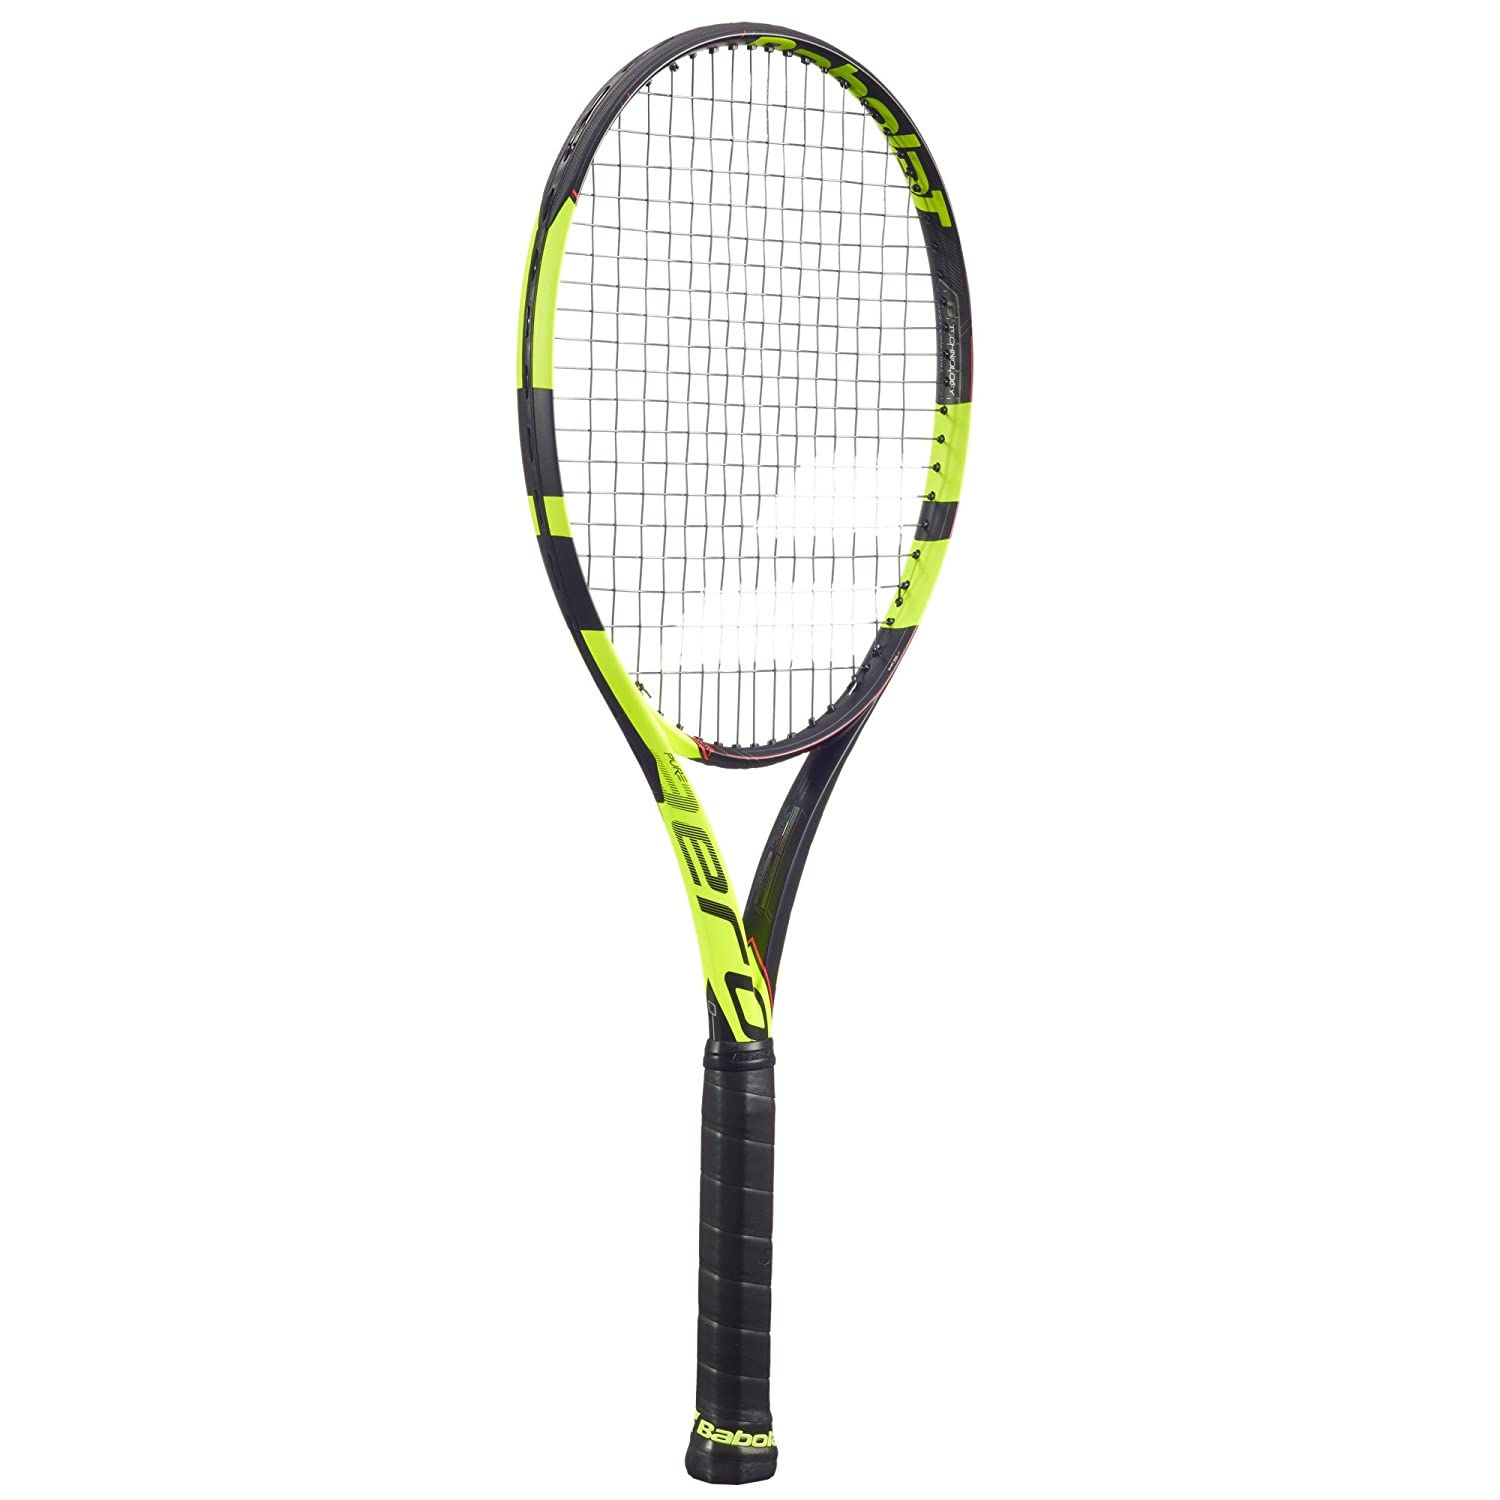 Babolat 2016 4.375 – 2018 with Pure B018R91LM6 Aero Tour Tennis Racquet – AEROPROツアー – Strung with Cover 4.375 B018R91LM6, grace eyewear:f9171e7e --- cgt-tbc.fr